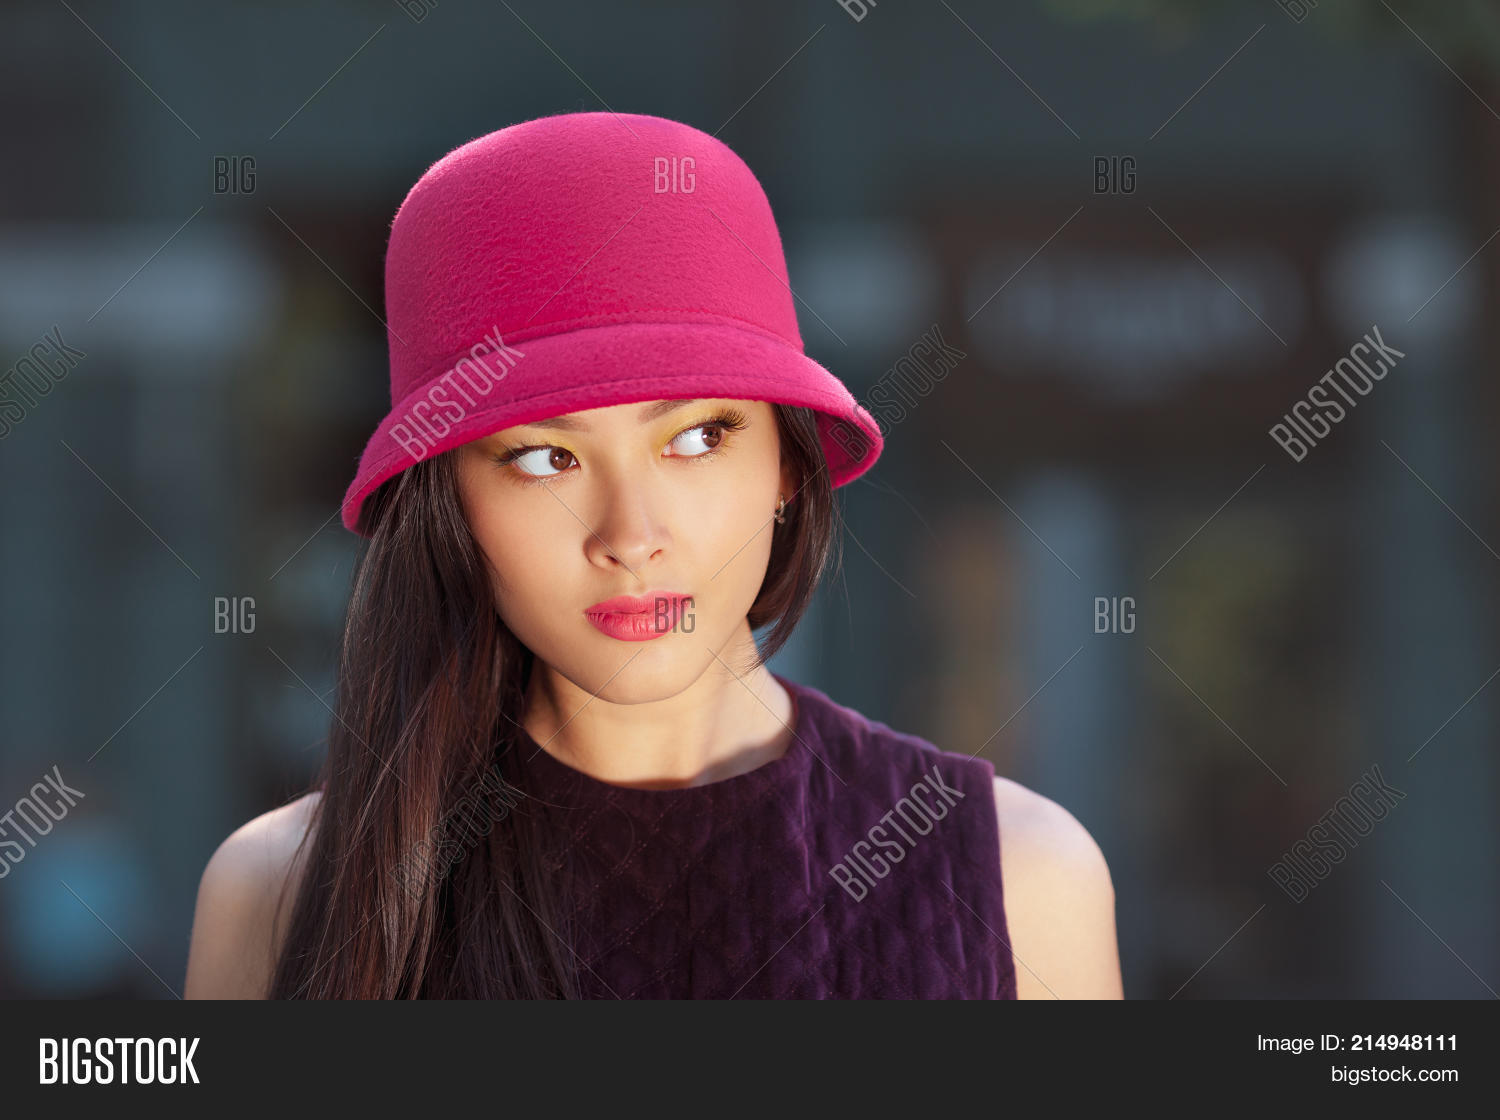 Attractive Asian Woman Image Photo Free Trial Bigstock